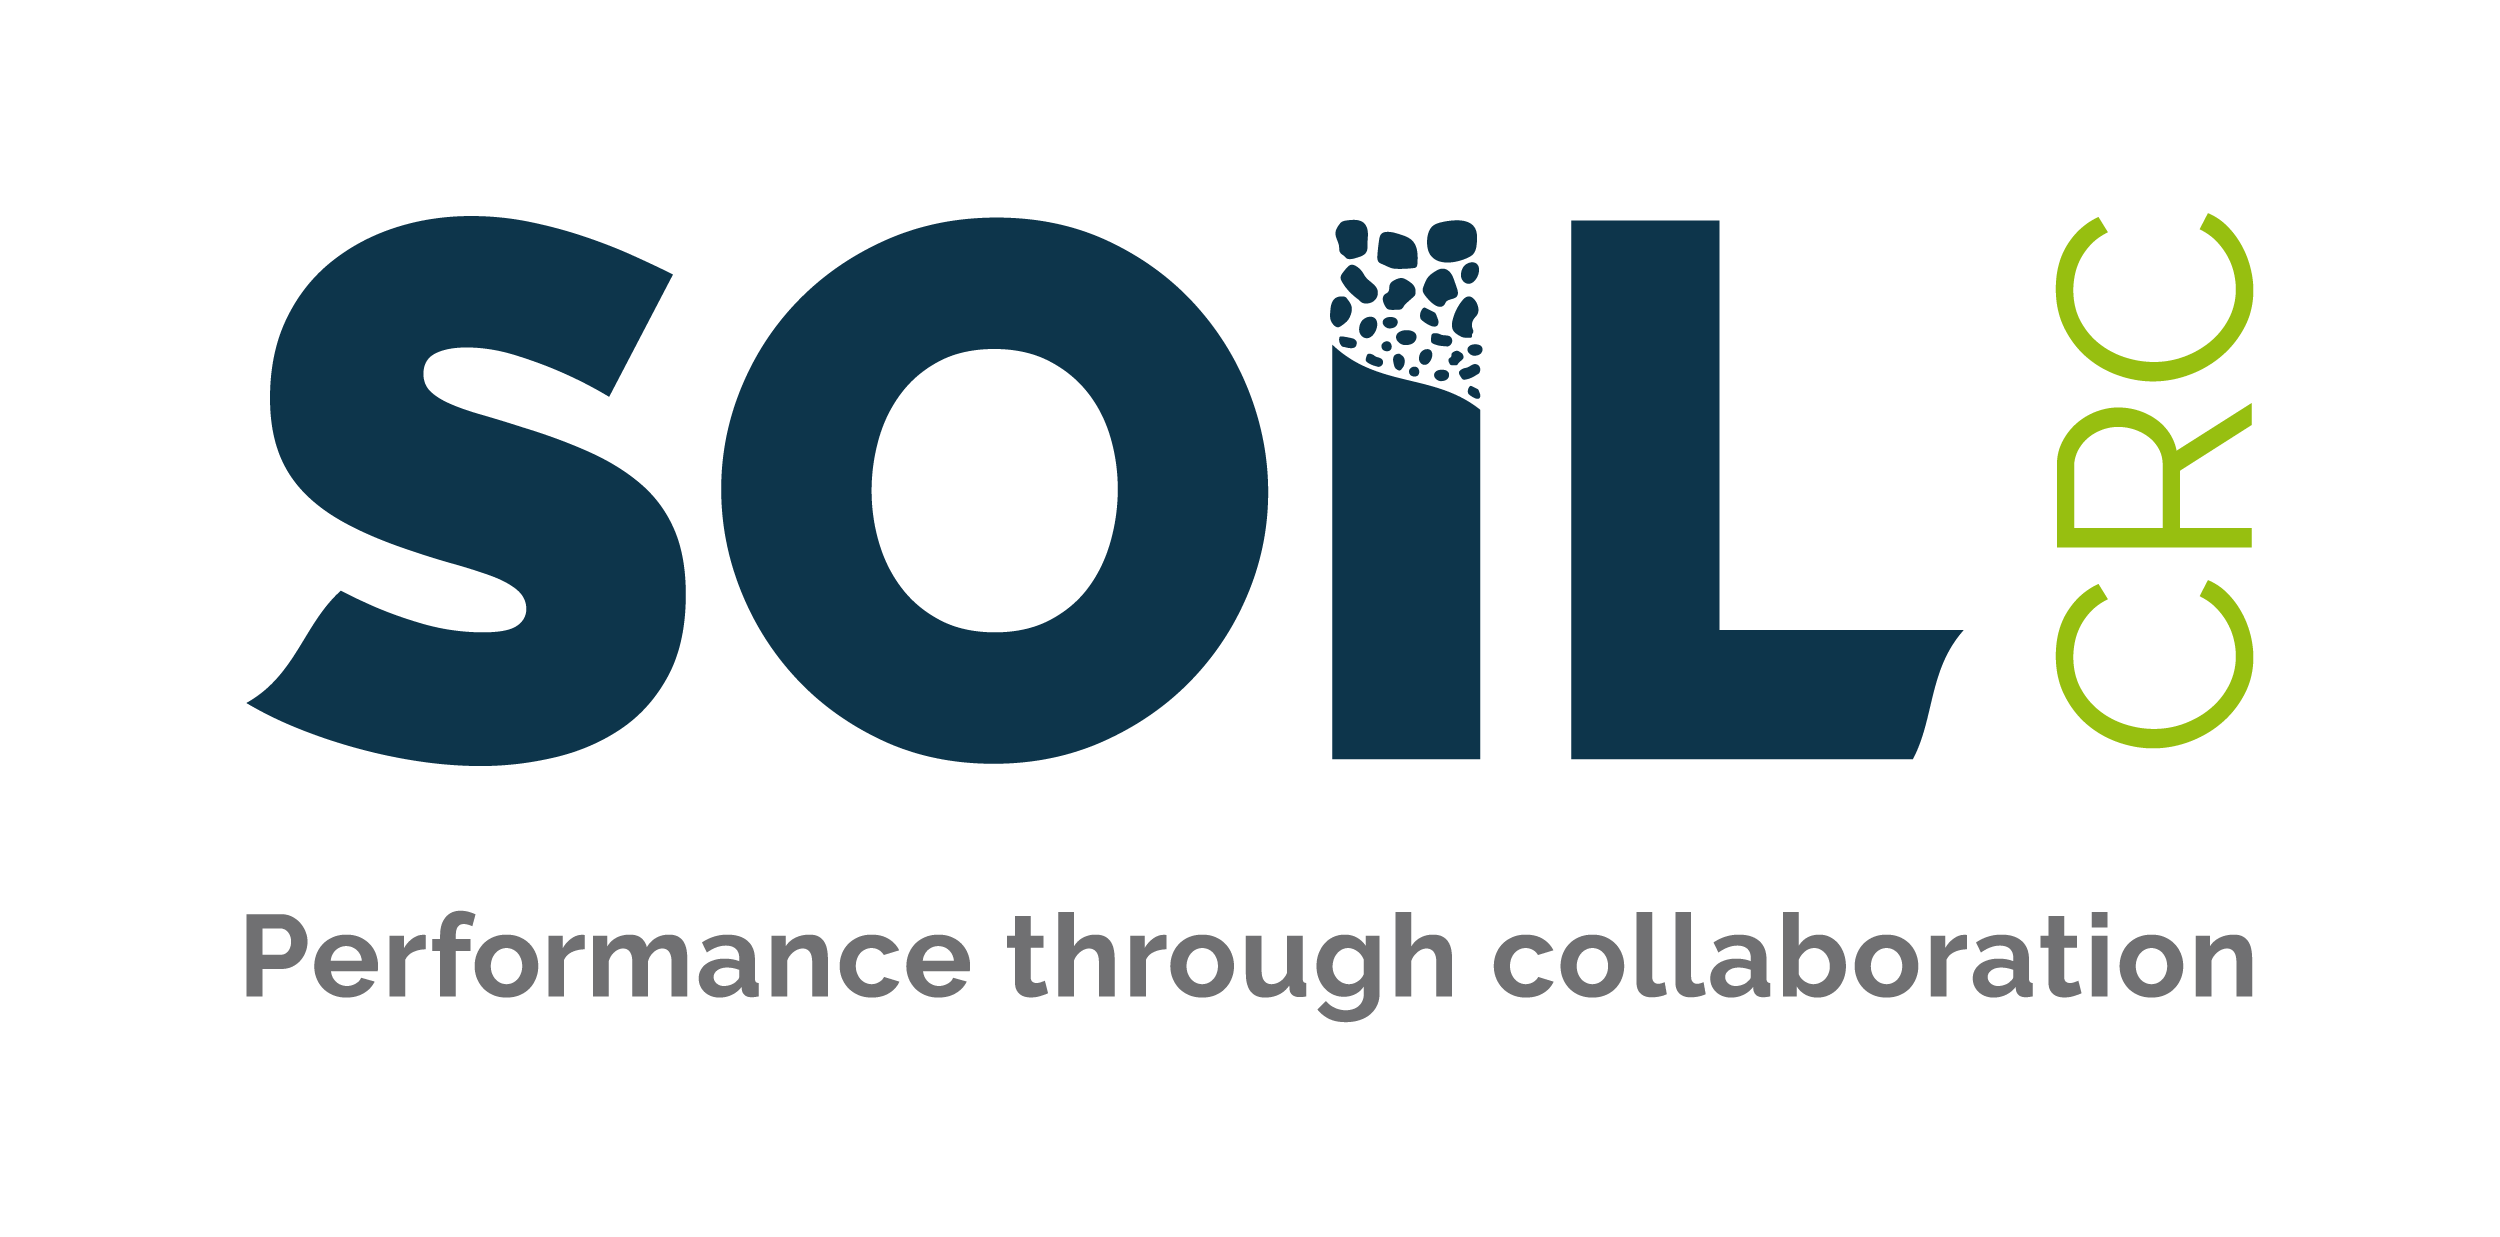 SoilCRC_LOGO_RGB_withTag.png